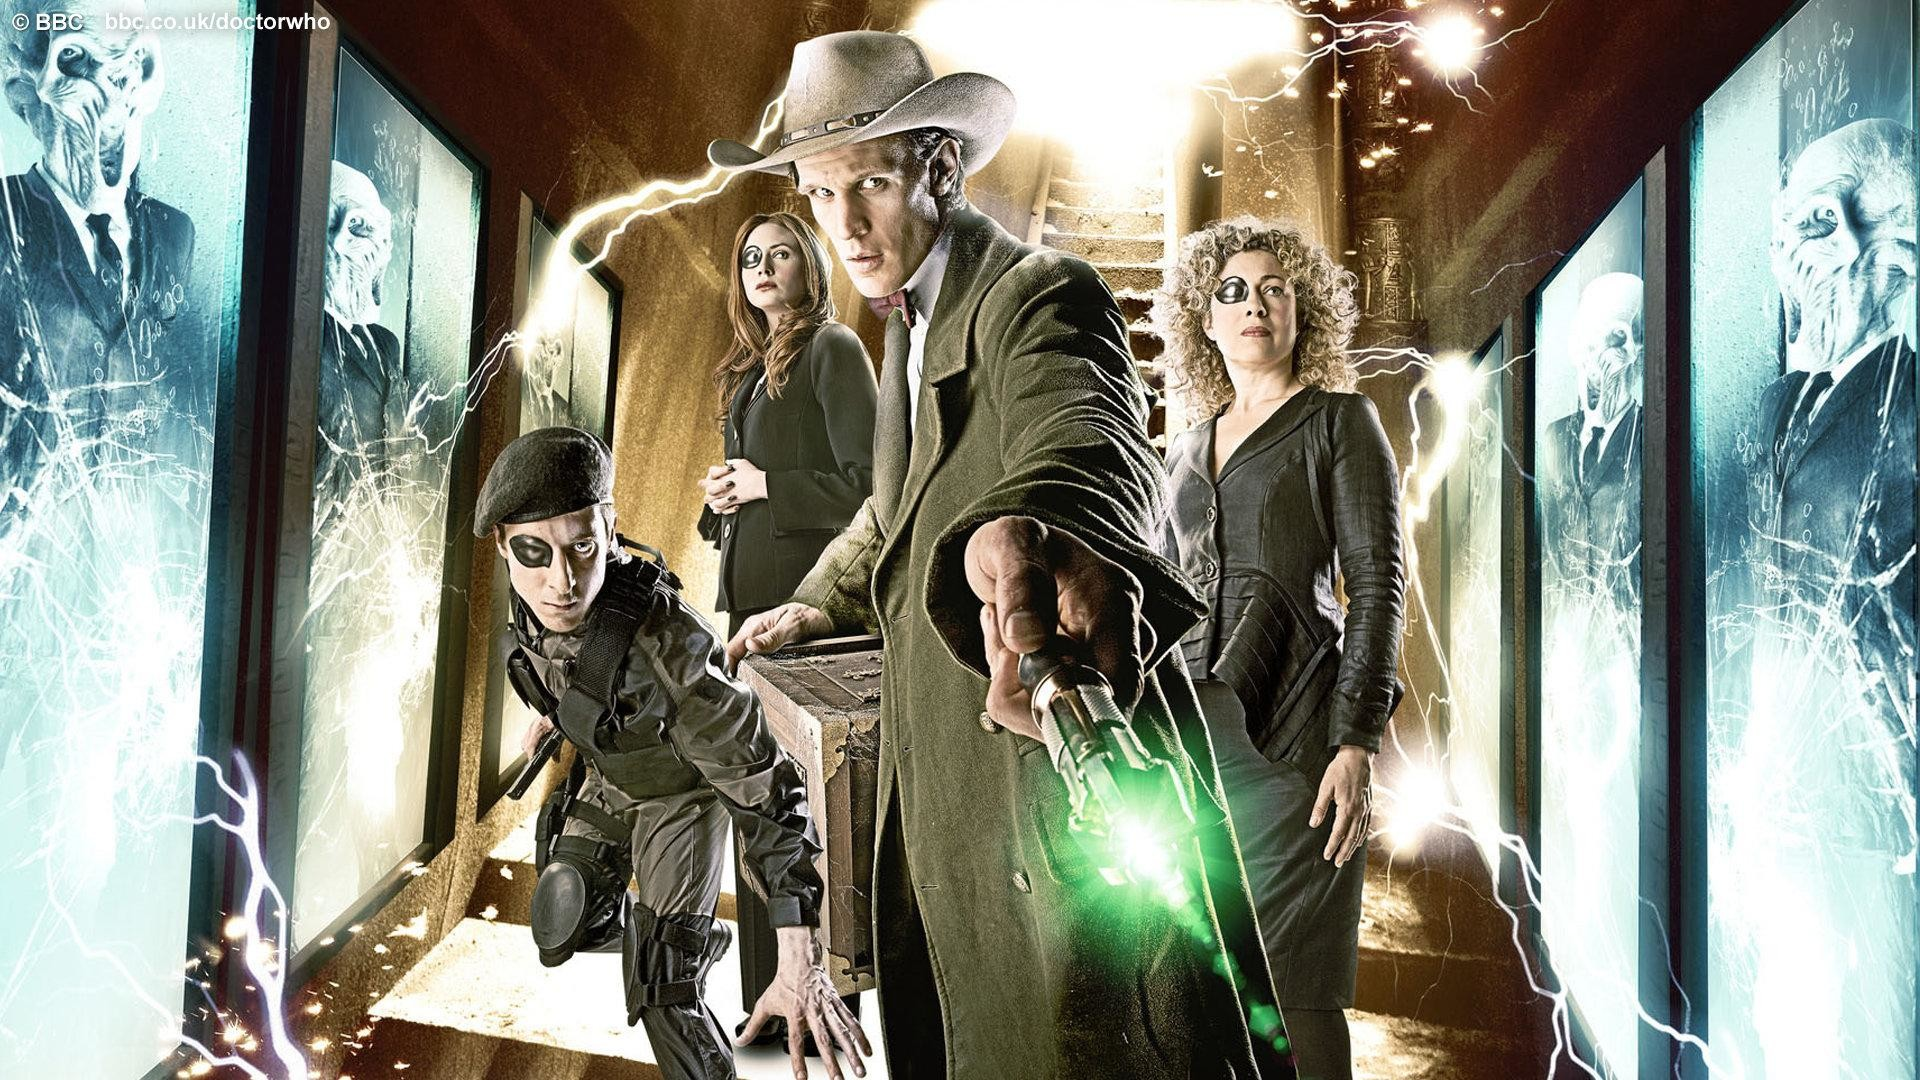 Doctor Who – The Wedding of River Song (wallpaper)